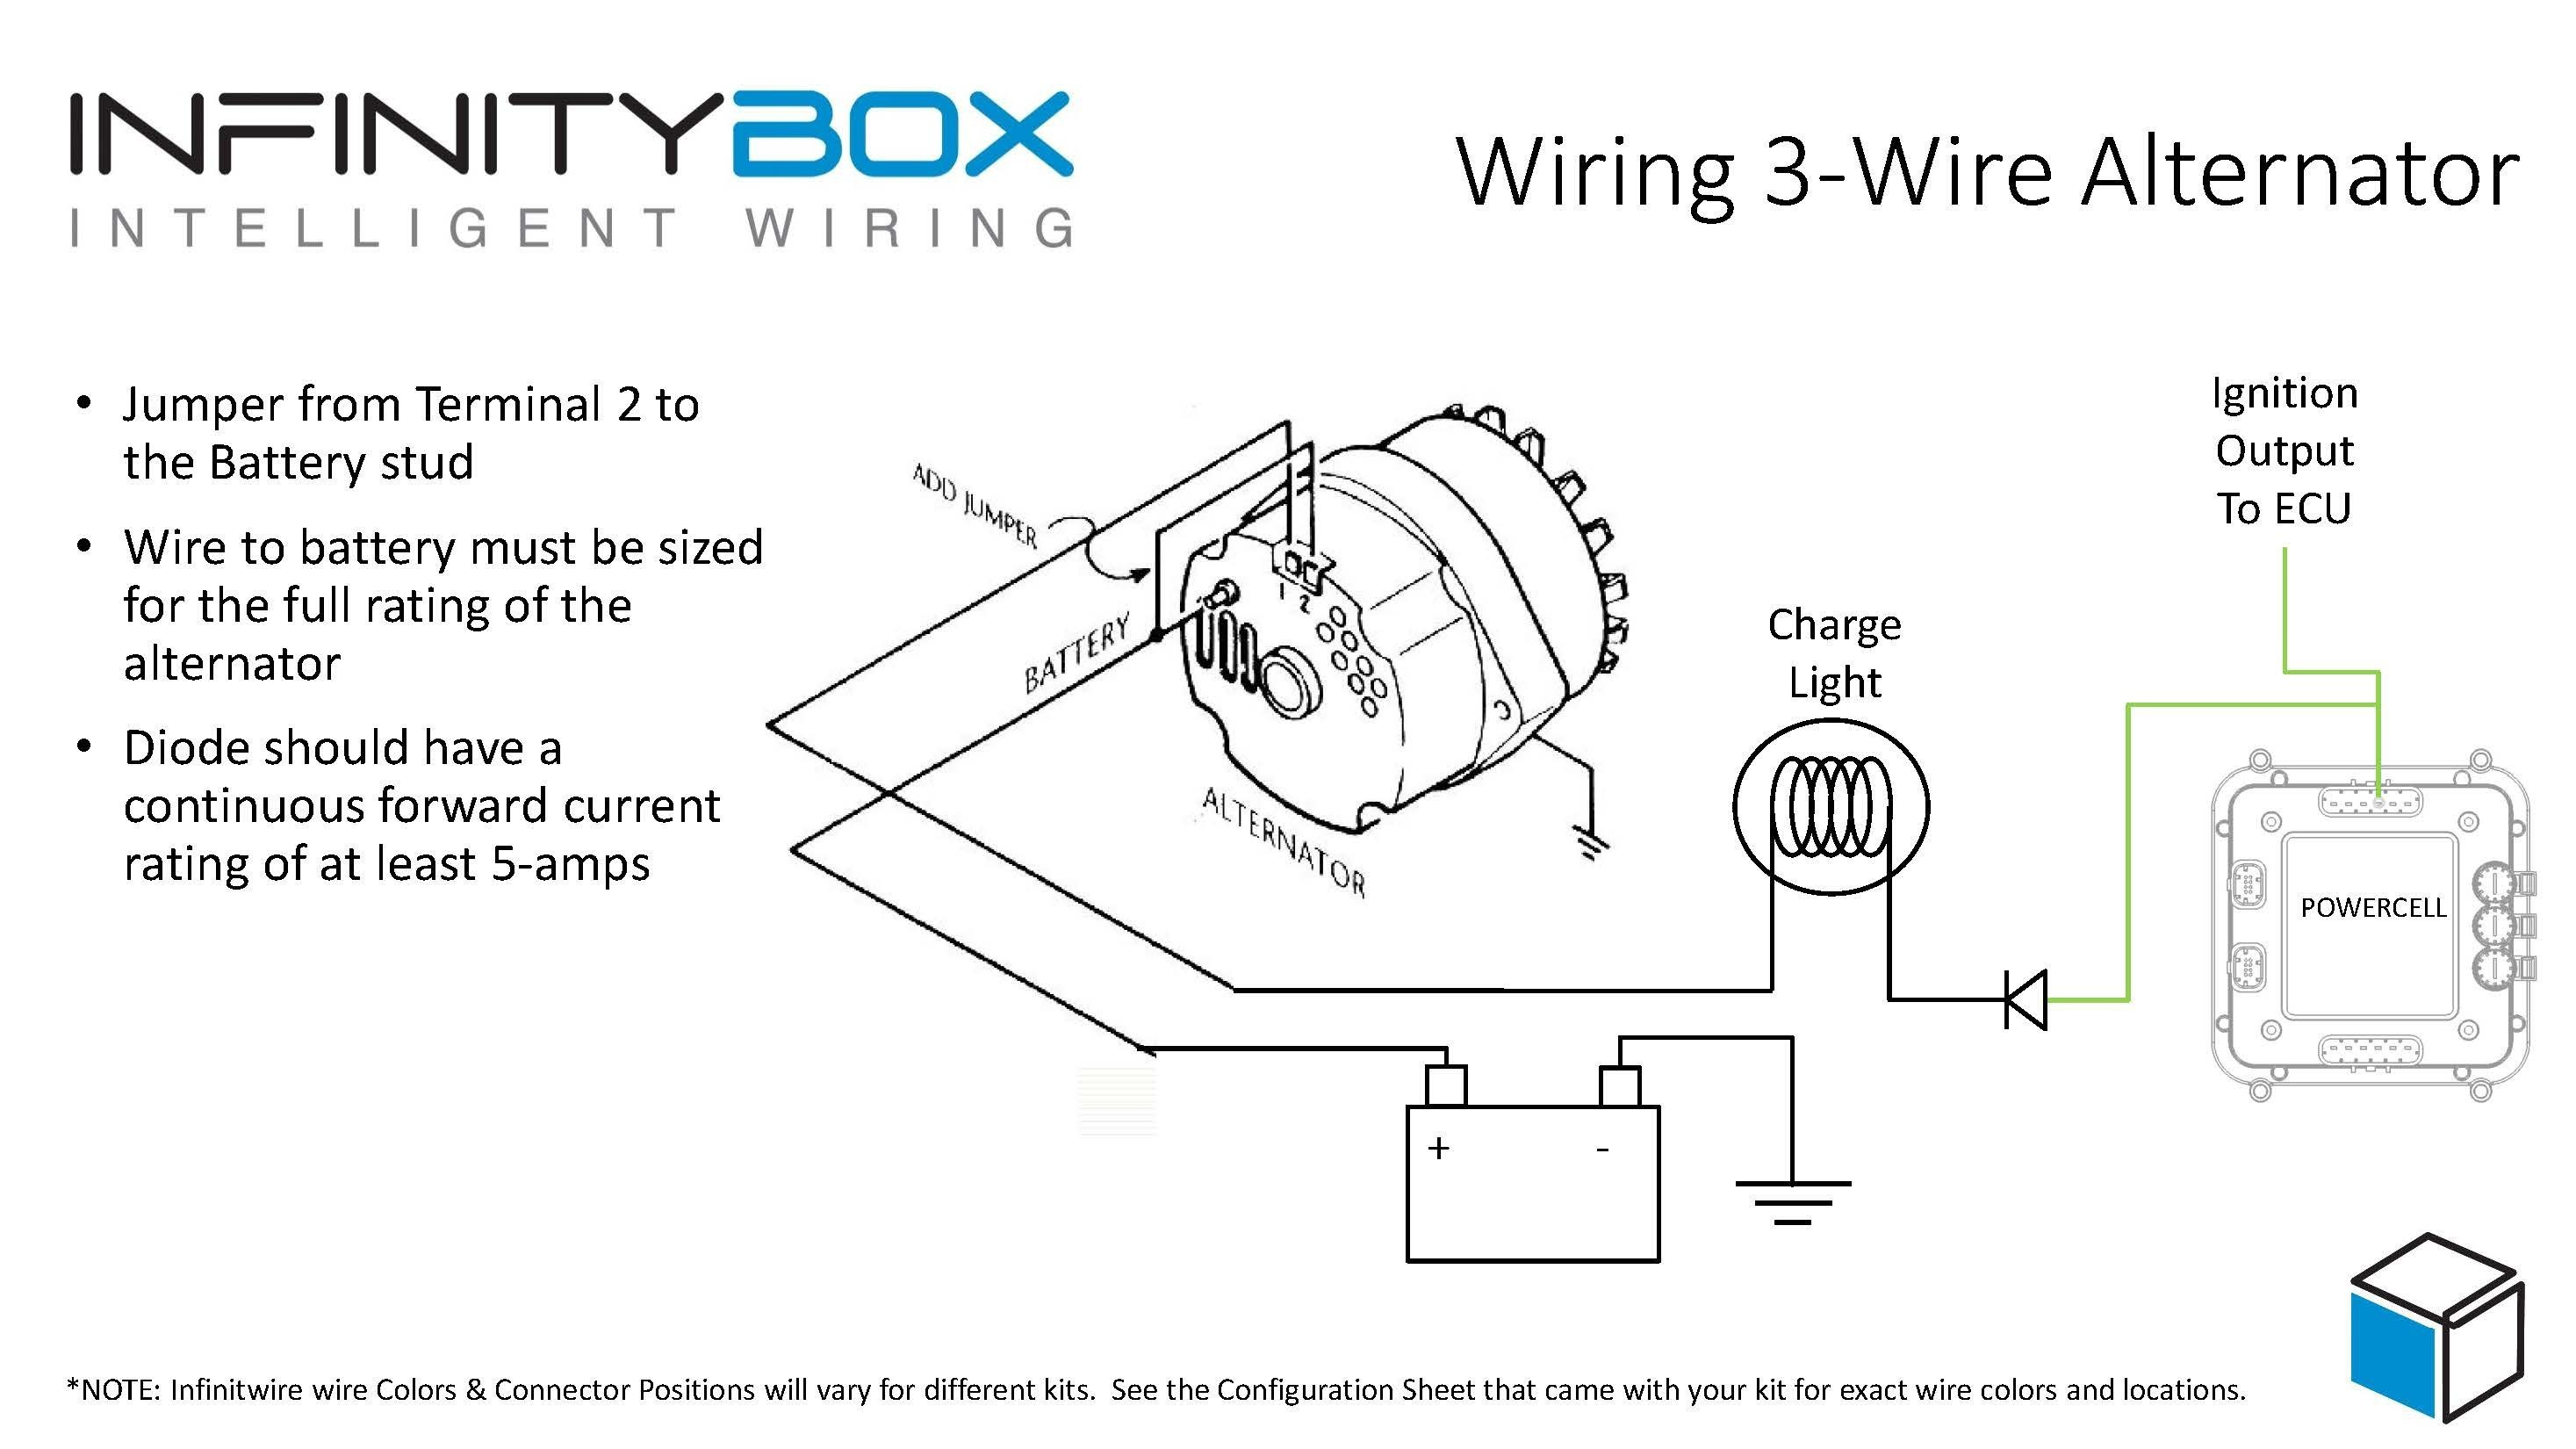 Delco Alternator Wiring Diagram Awesome 3 Wire Alternator Wiring Diagram  Diagram Of Delco Alternator Wiring Diagram